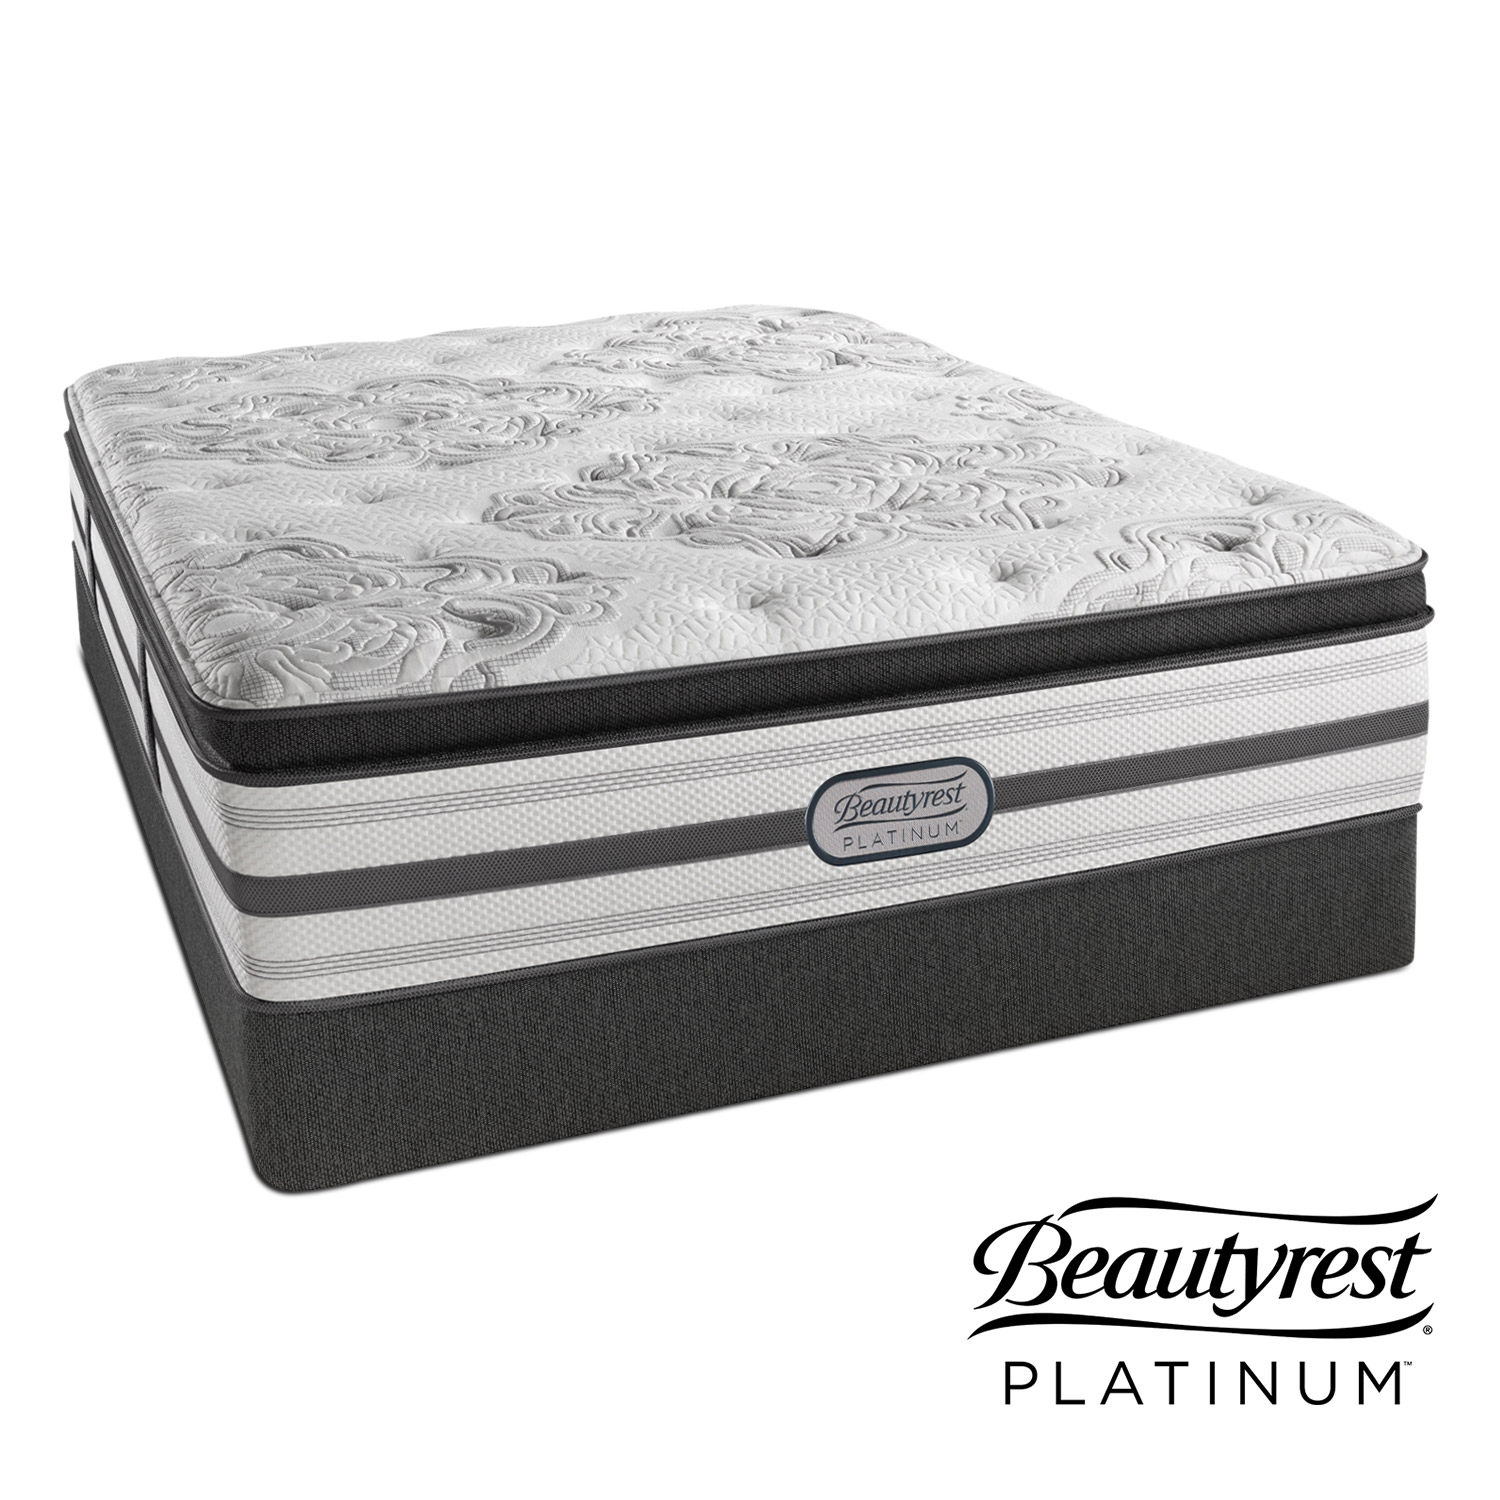 Mattresses and Bedding - Genevieve King Mattress/Split Low-Profile Foundation Set